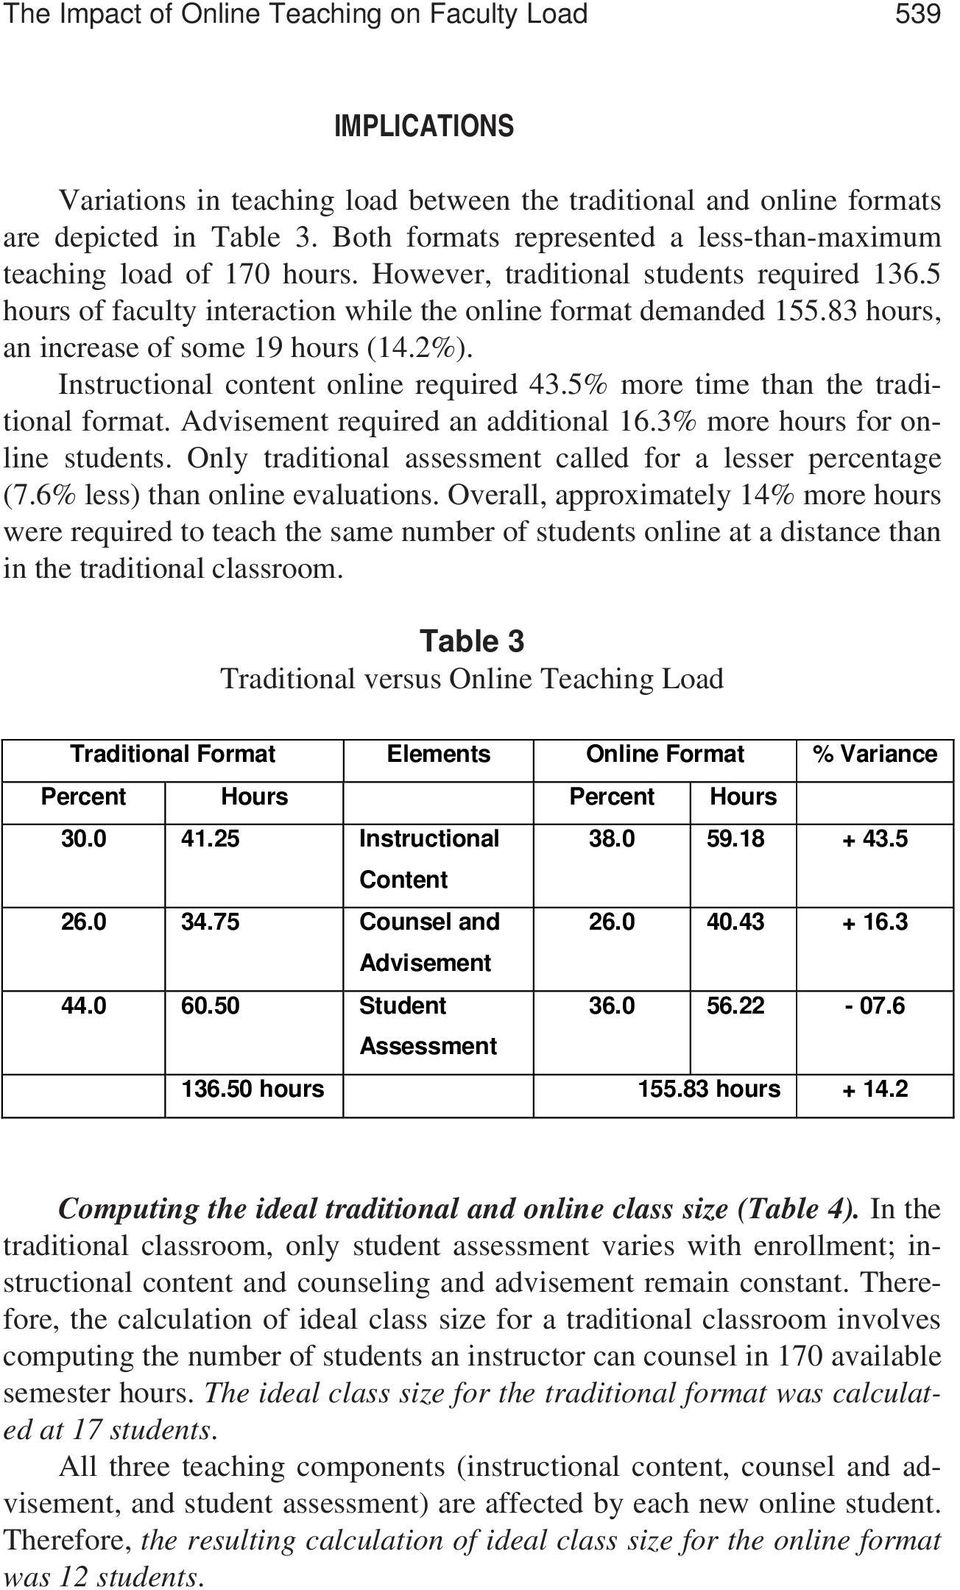 83, an increase of some 19 (14.2%). Instructional content online required 43.5% more time than the traditional format. Advisement required an additional 16.3% more for online students.